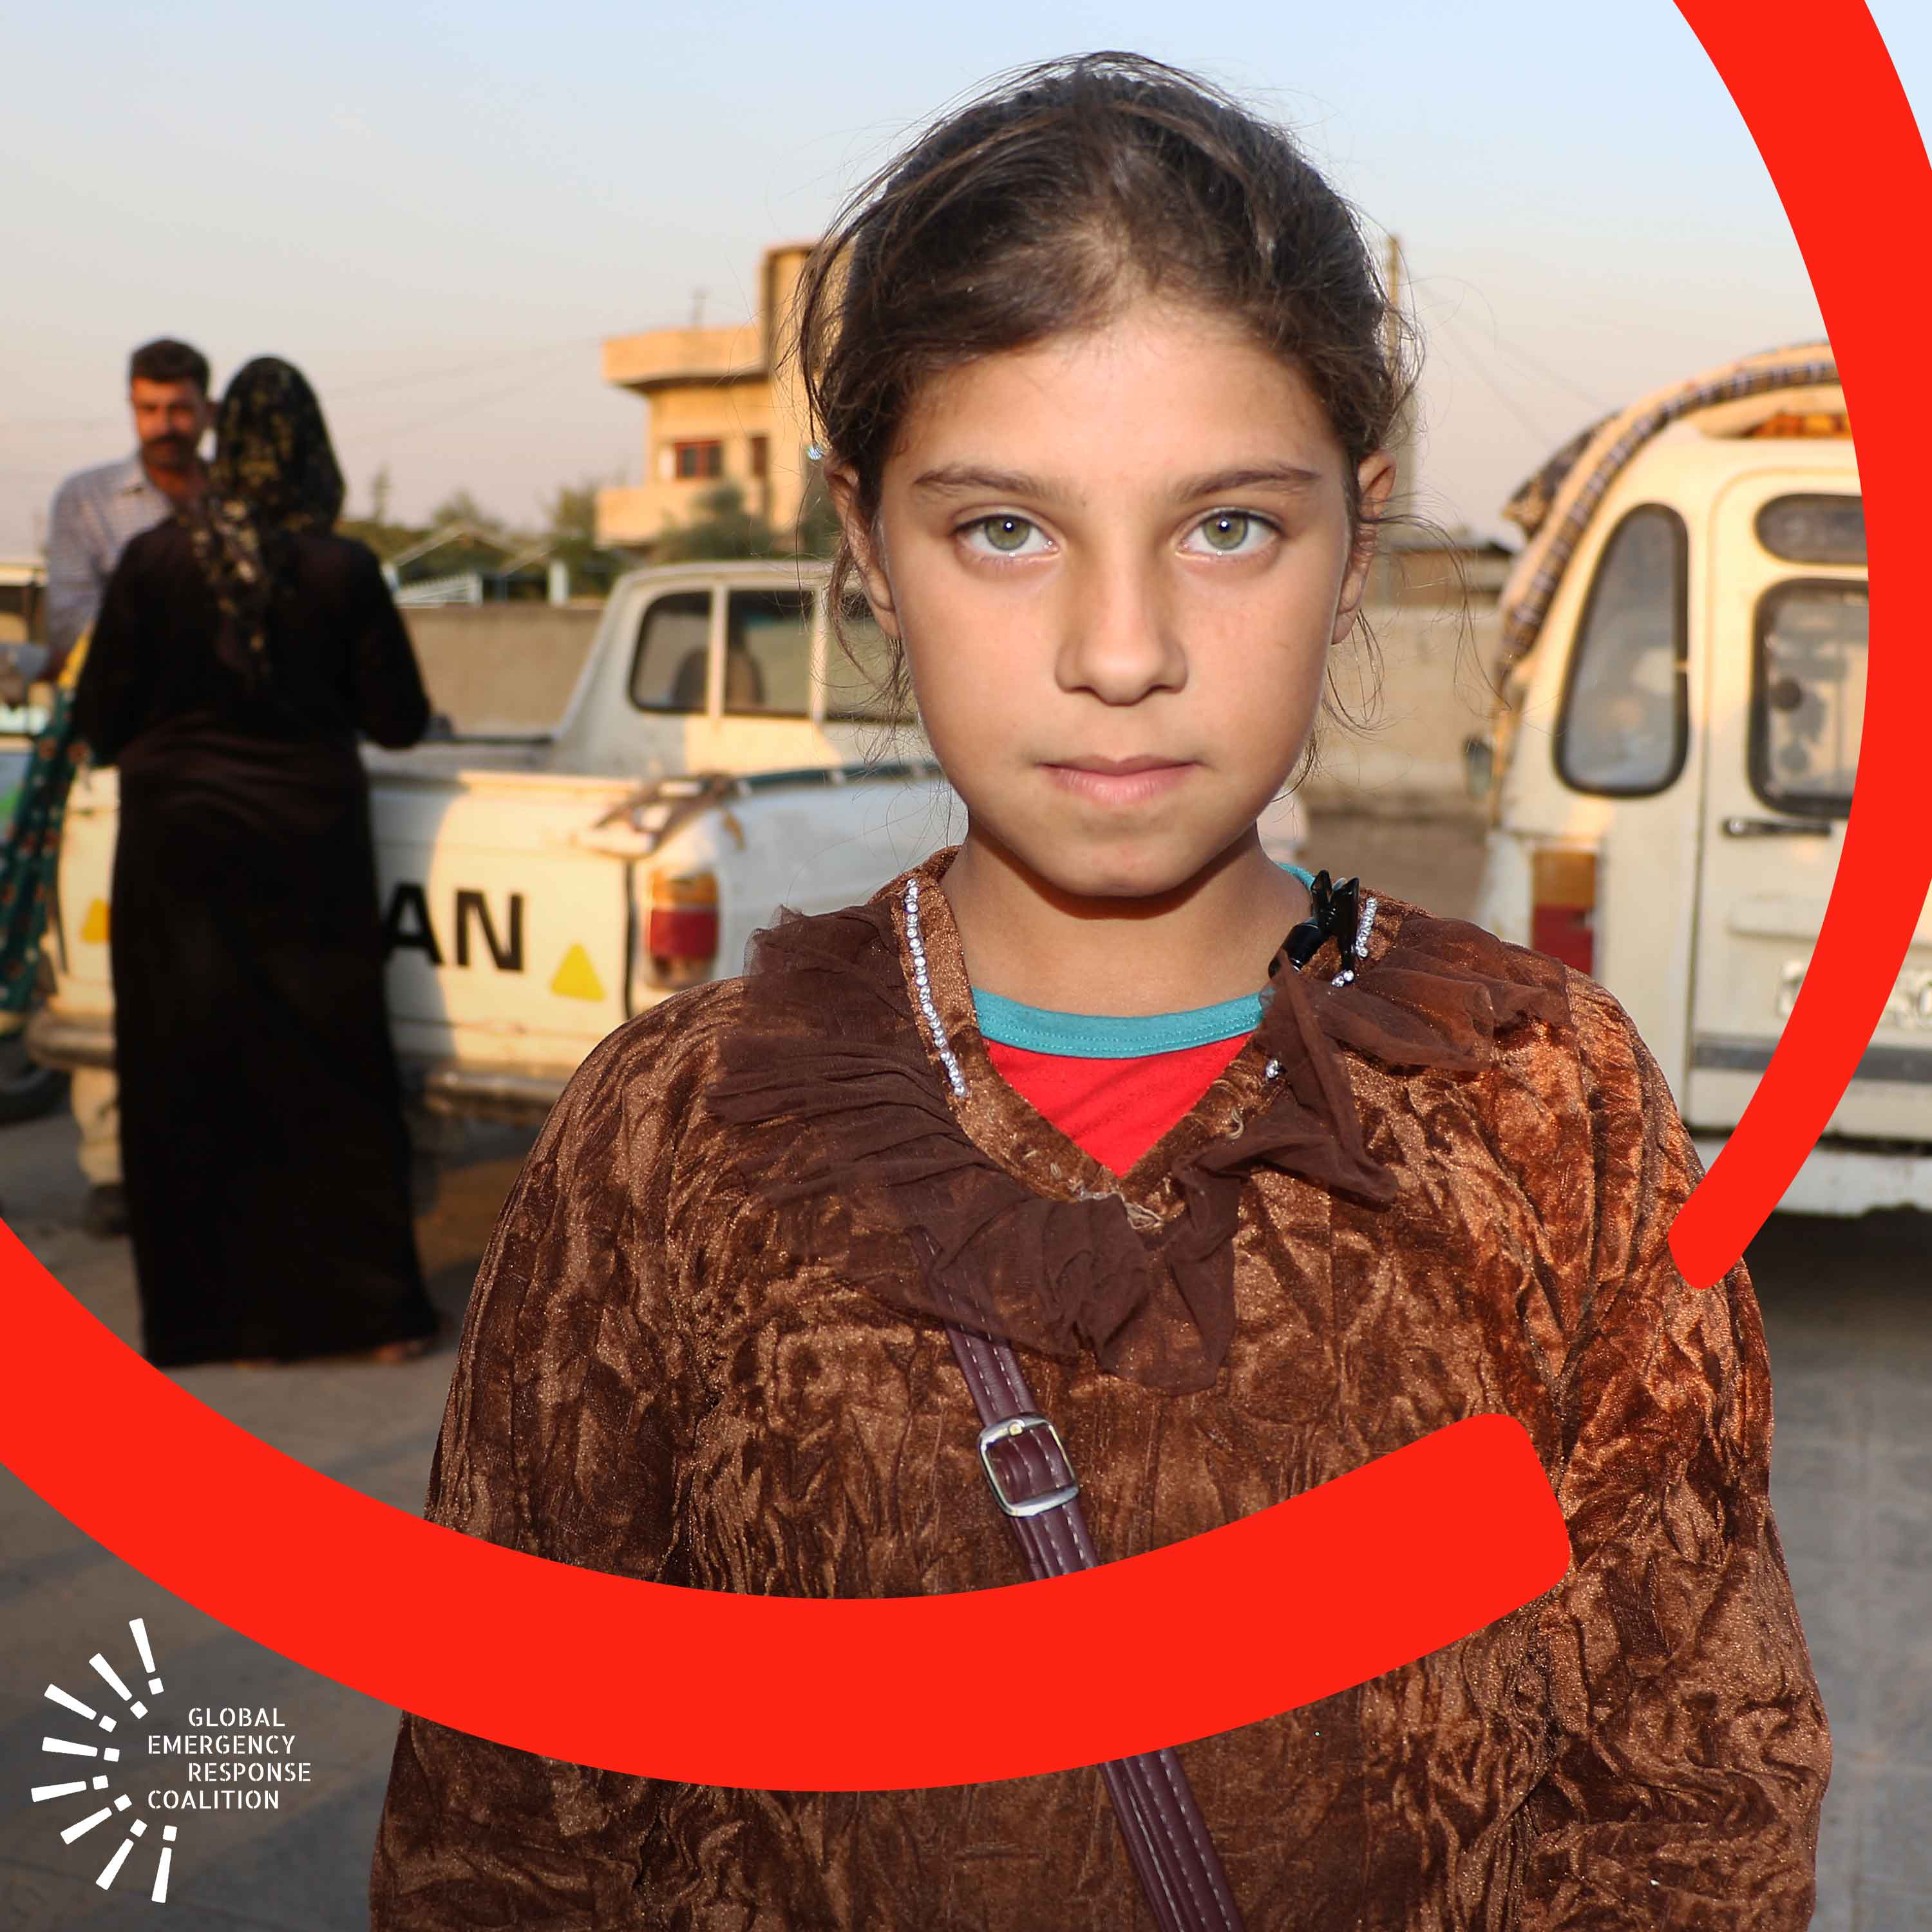 An 11-year old girl who has been displaced with her family in Syria stands in front of a school bus.